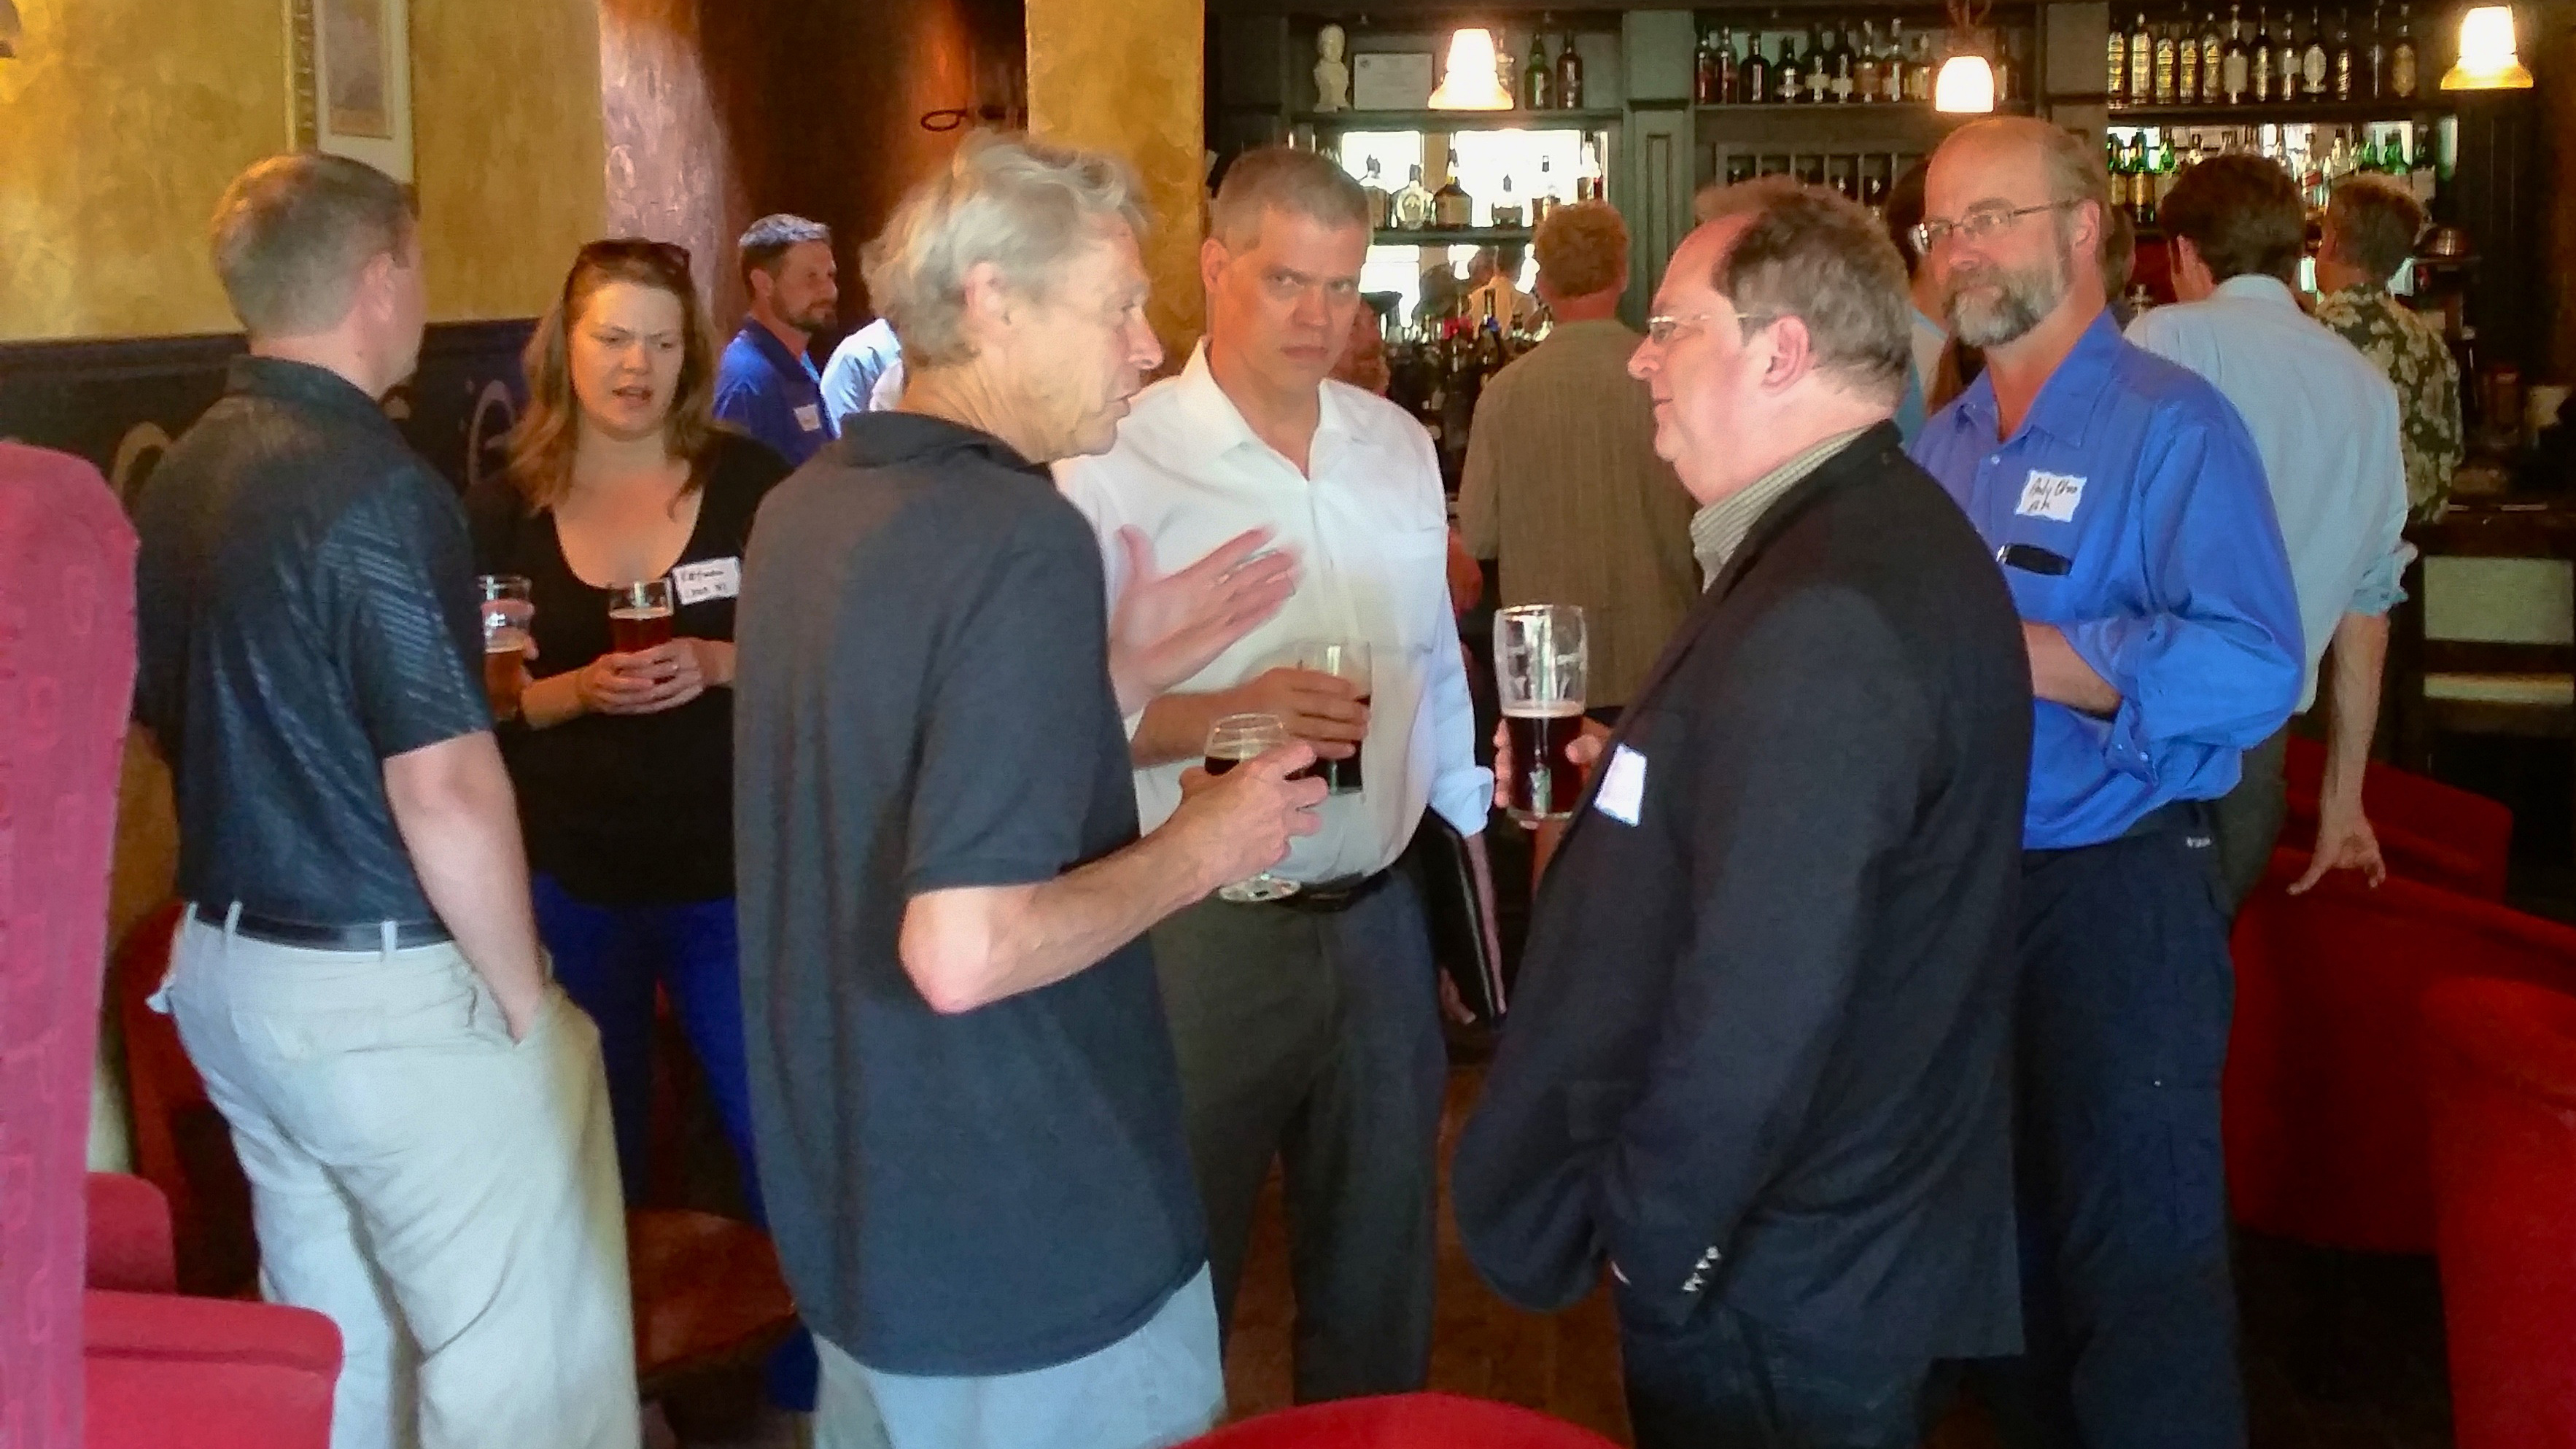 CEBN members network after a policy briefing in Madison, Wisconsin (July 10, 2014).